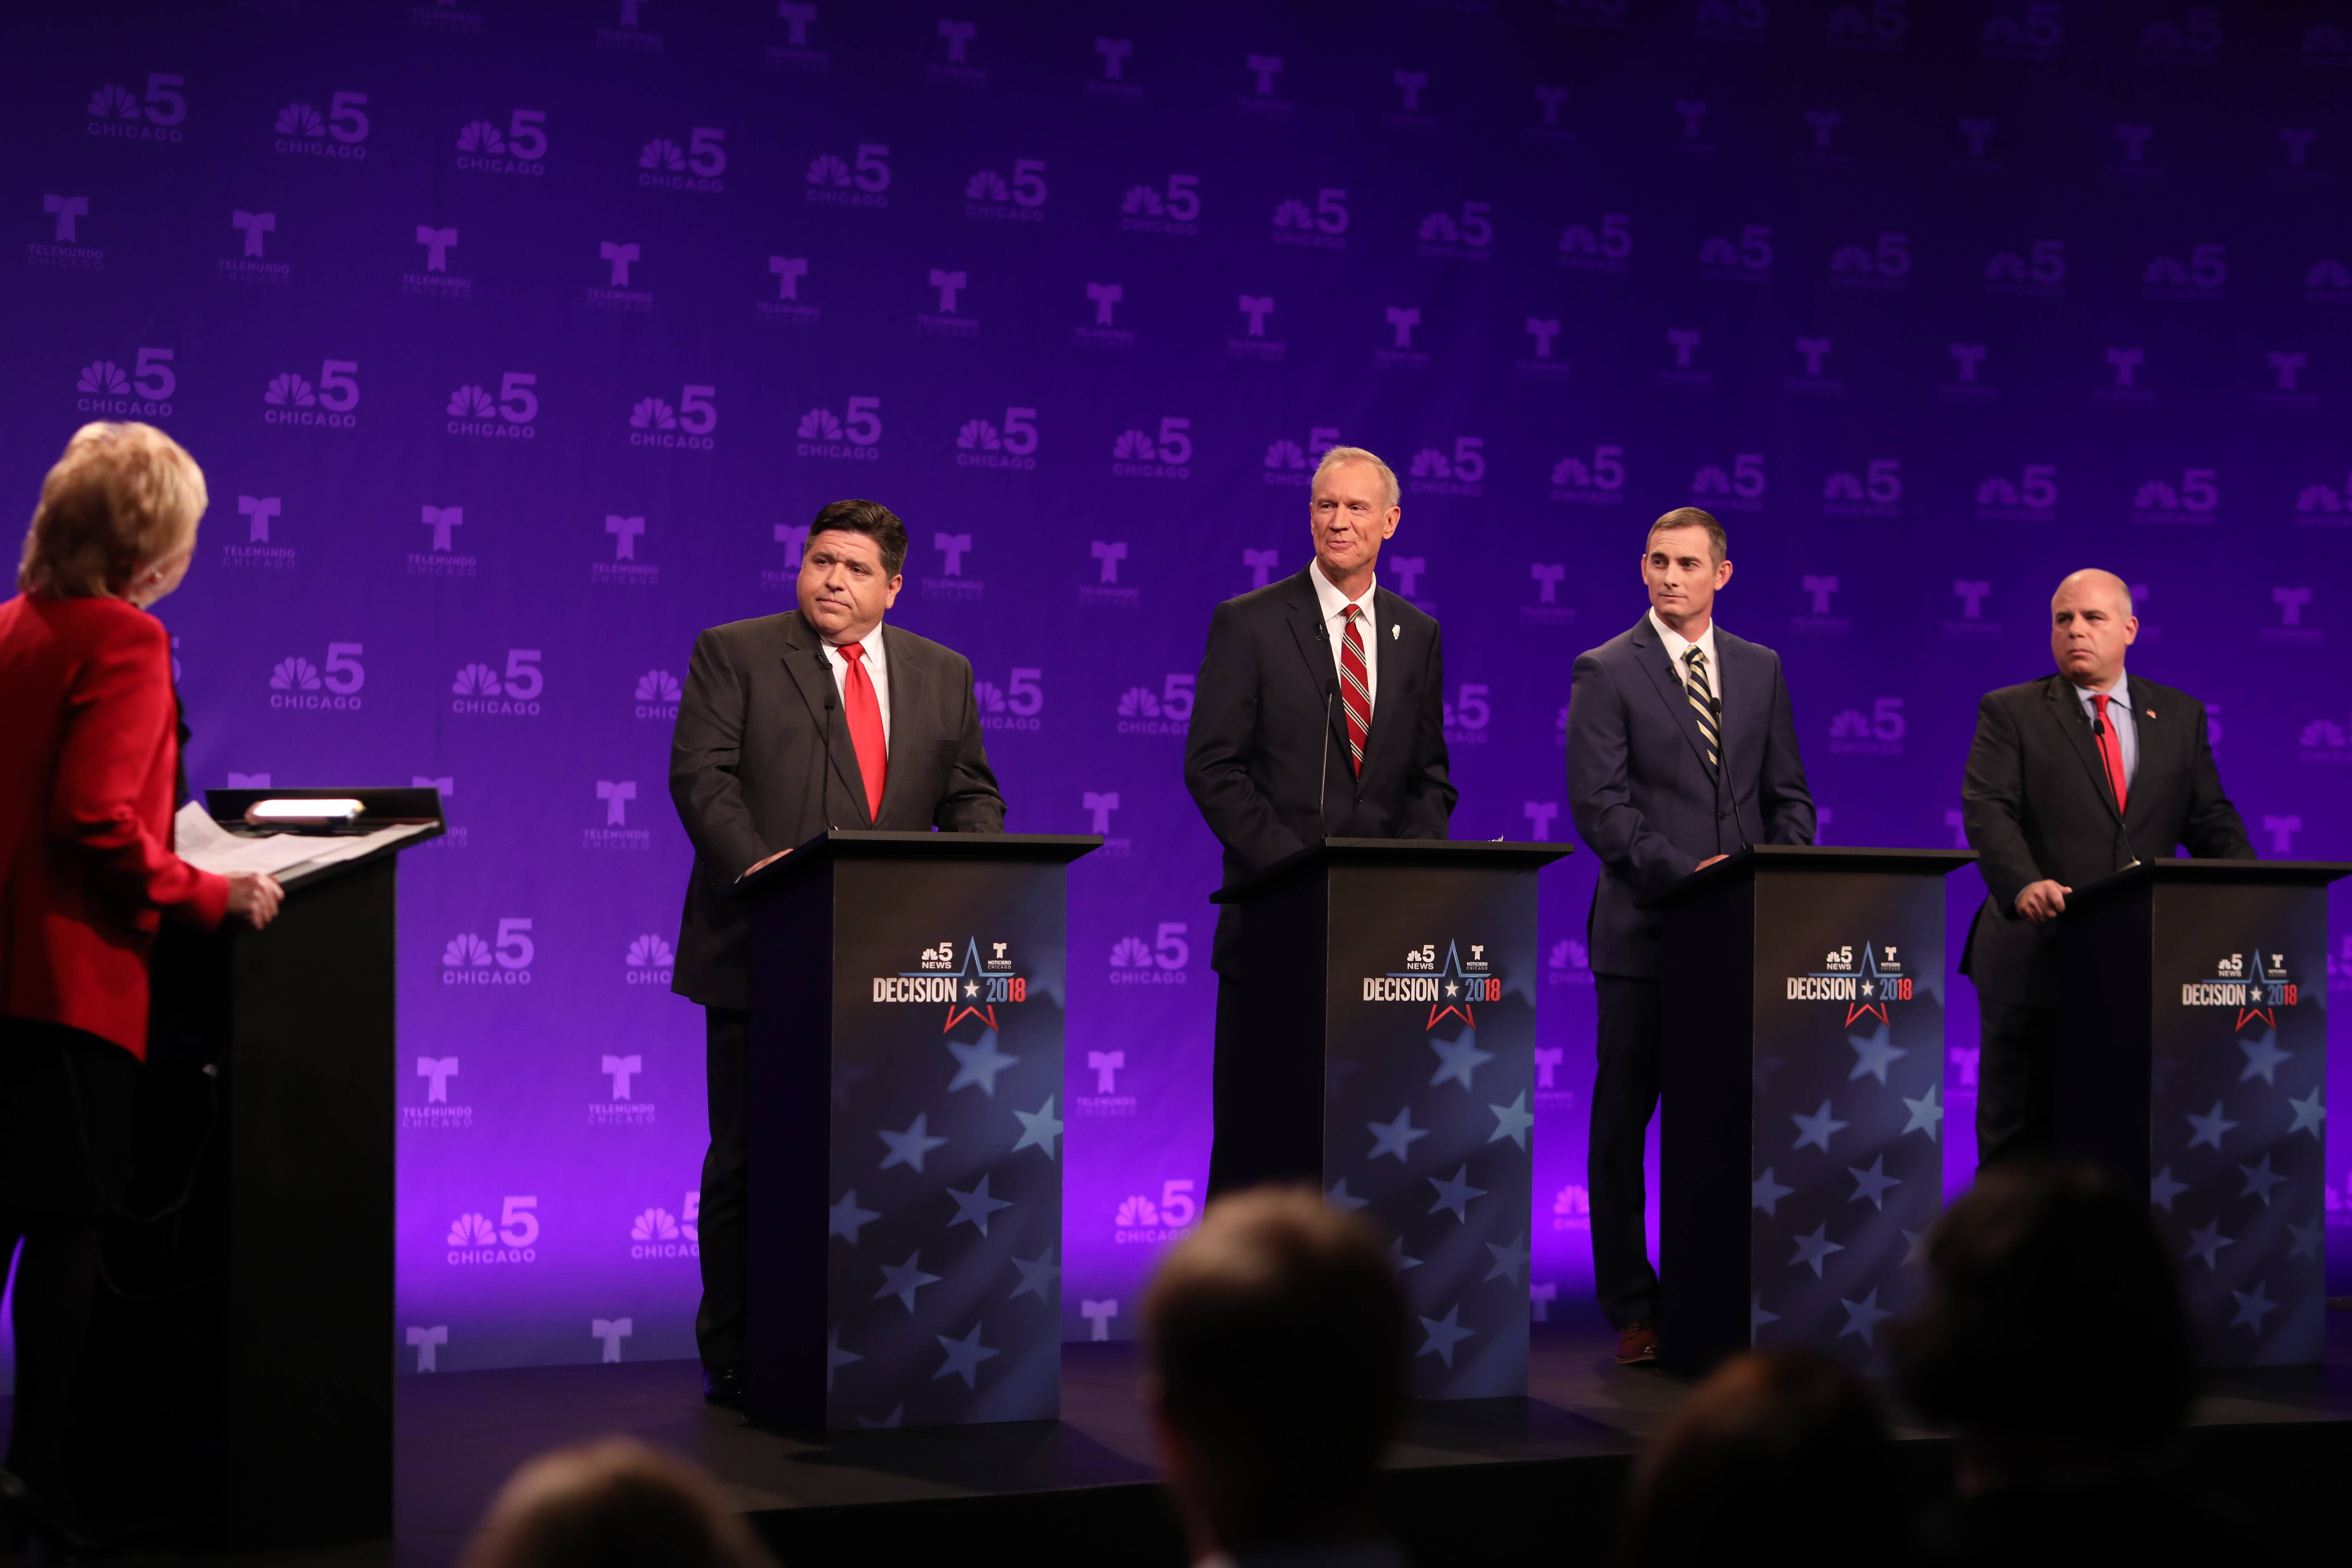 Editorial: Rauner, Pritzker and a dismal first governor debate